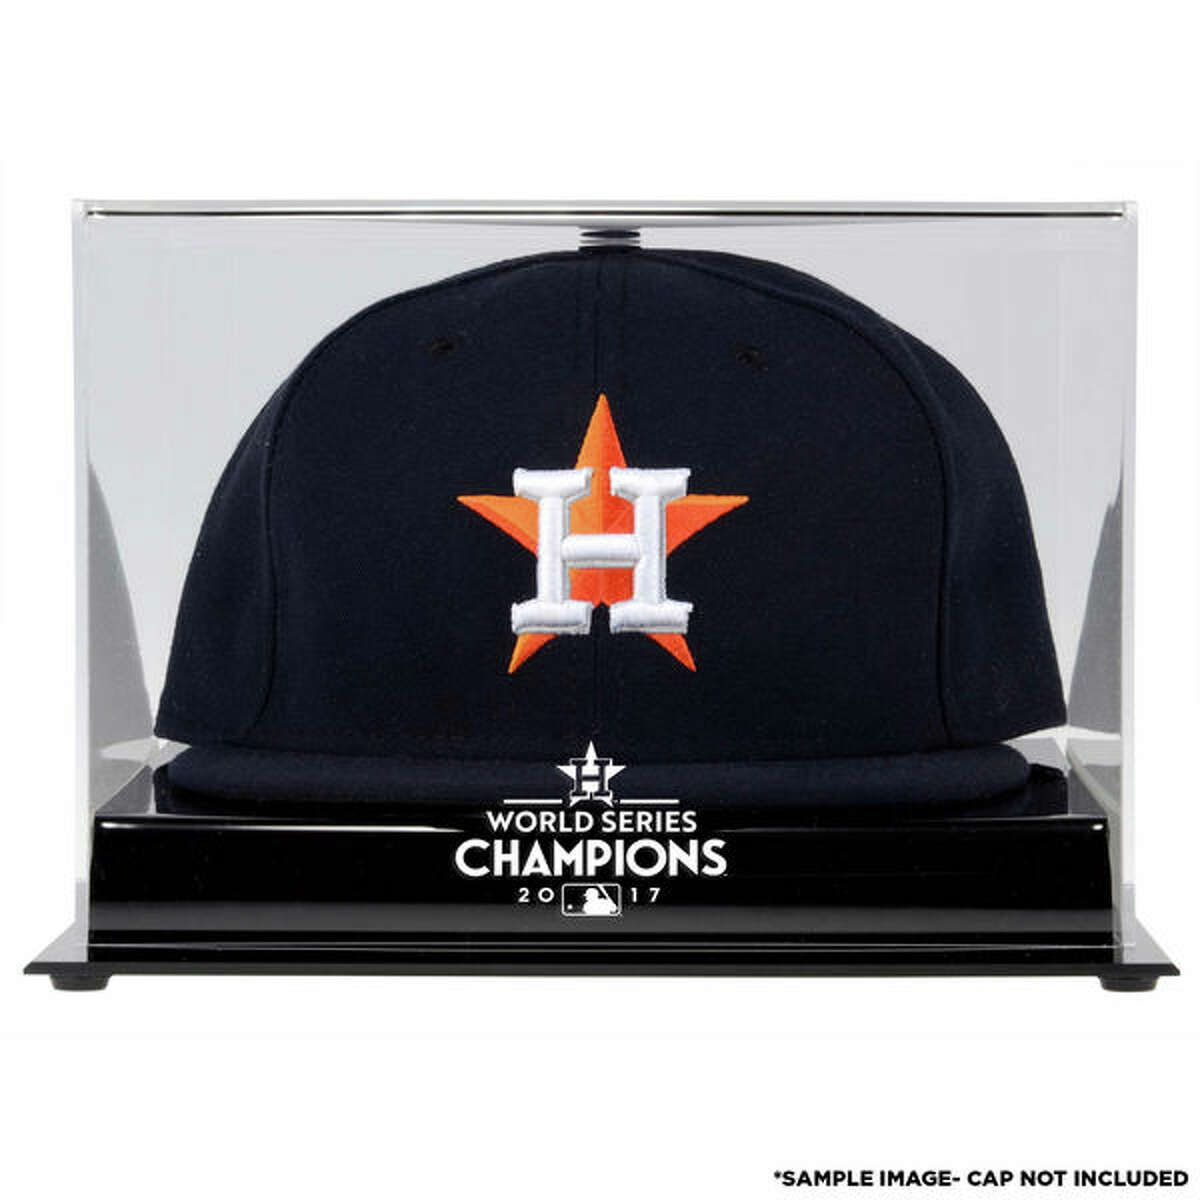 Houston Astros World Series Champions Acrylic Logo cap Display Case: Whether it's the lucky hat your favorite fan wore during Game 7, or a new commemorative hat they purchased after the win, this display case with an authentic Astros World Series logo will keep it safe. (See price & more details)